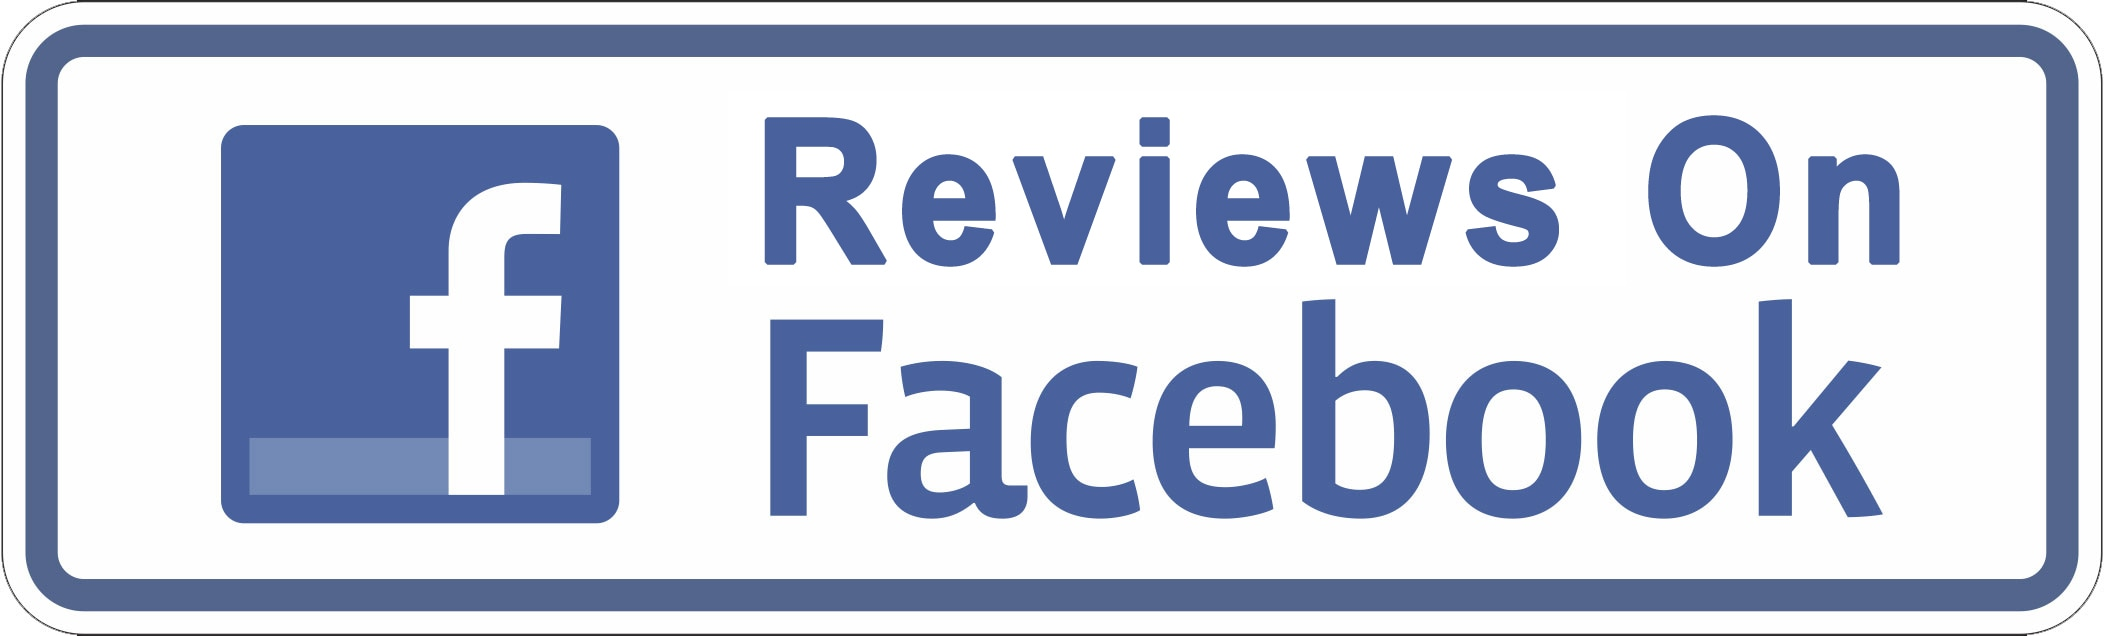 How to Earn Customer Reviews and Grow Volume